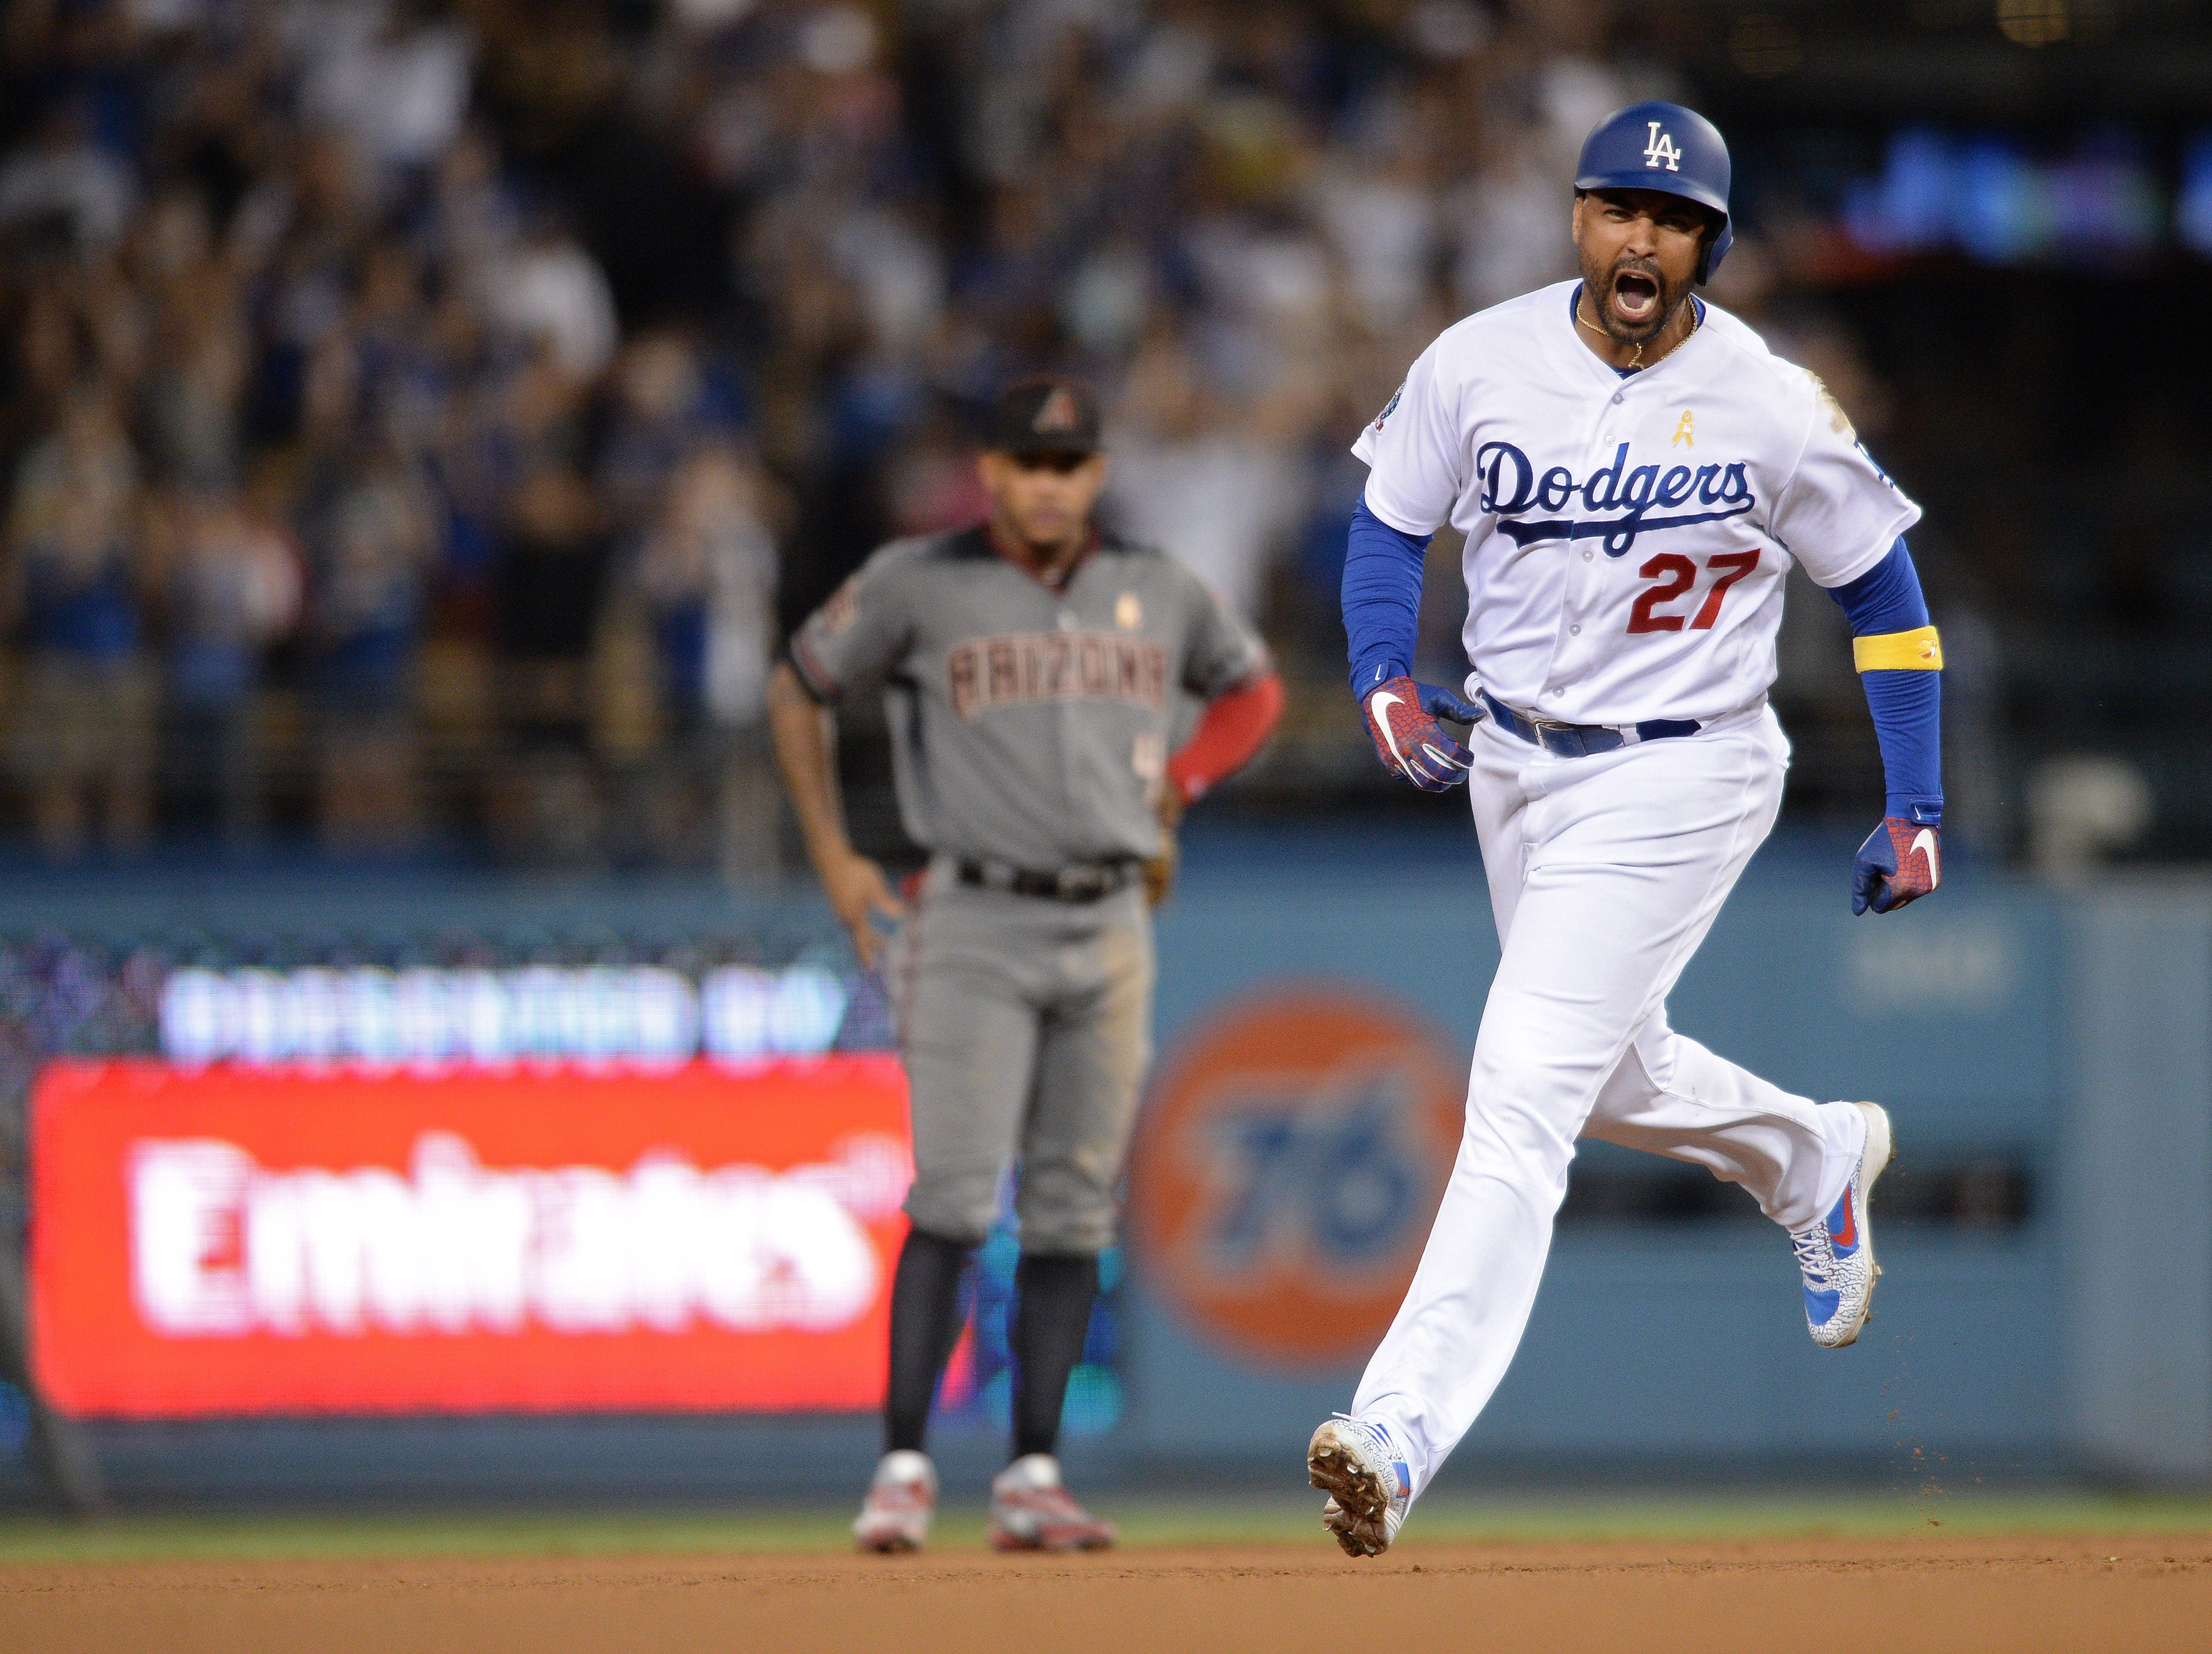 Sep 1, 2018; Los Angeles, CA, USA; Los Angeles Dodgers left fielder Matt Kemp (27) reacts as he rounds the bases after hitting a three-run home run during the eighth inning as Arizona Diamondbacks second baseman Ketel Marte (4) looks on at Dodger Stadium.